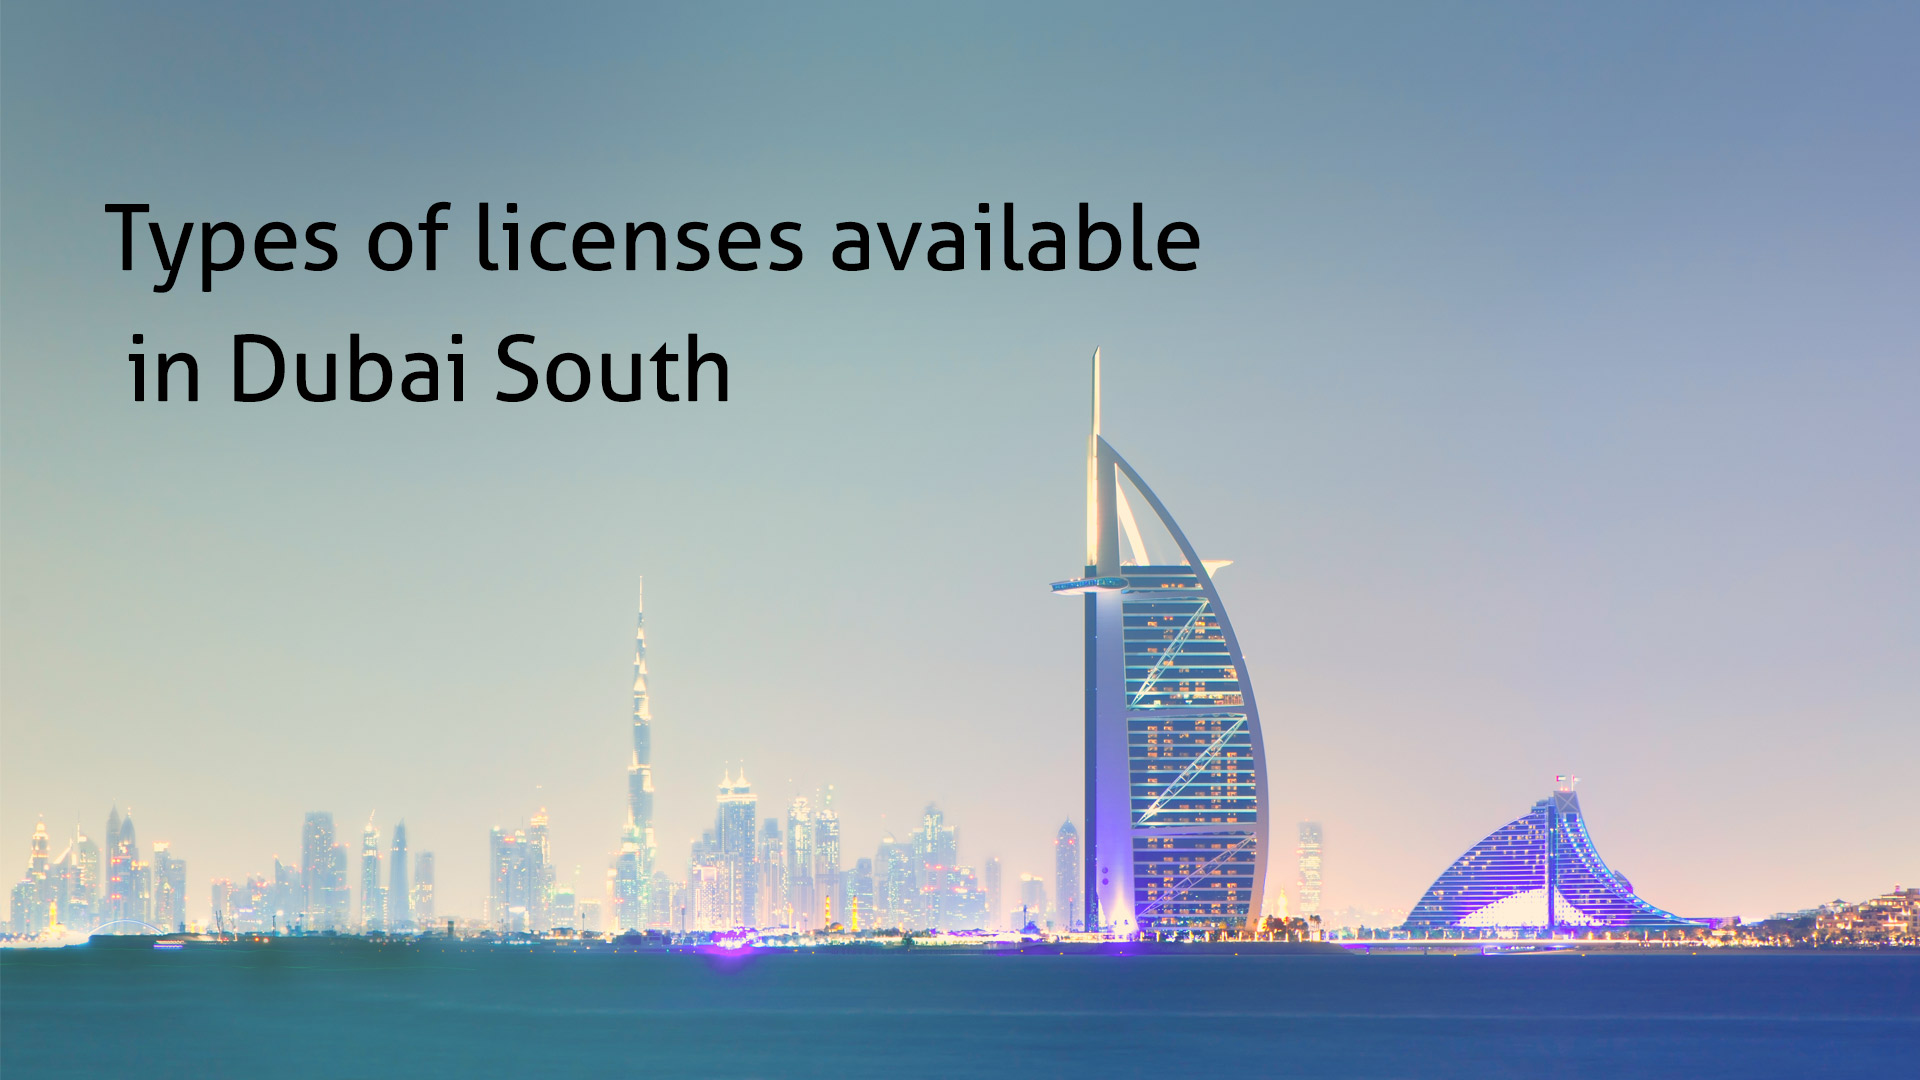 Types of licenses available in Dubai South